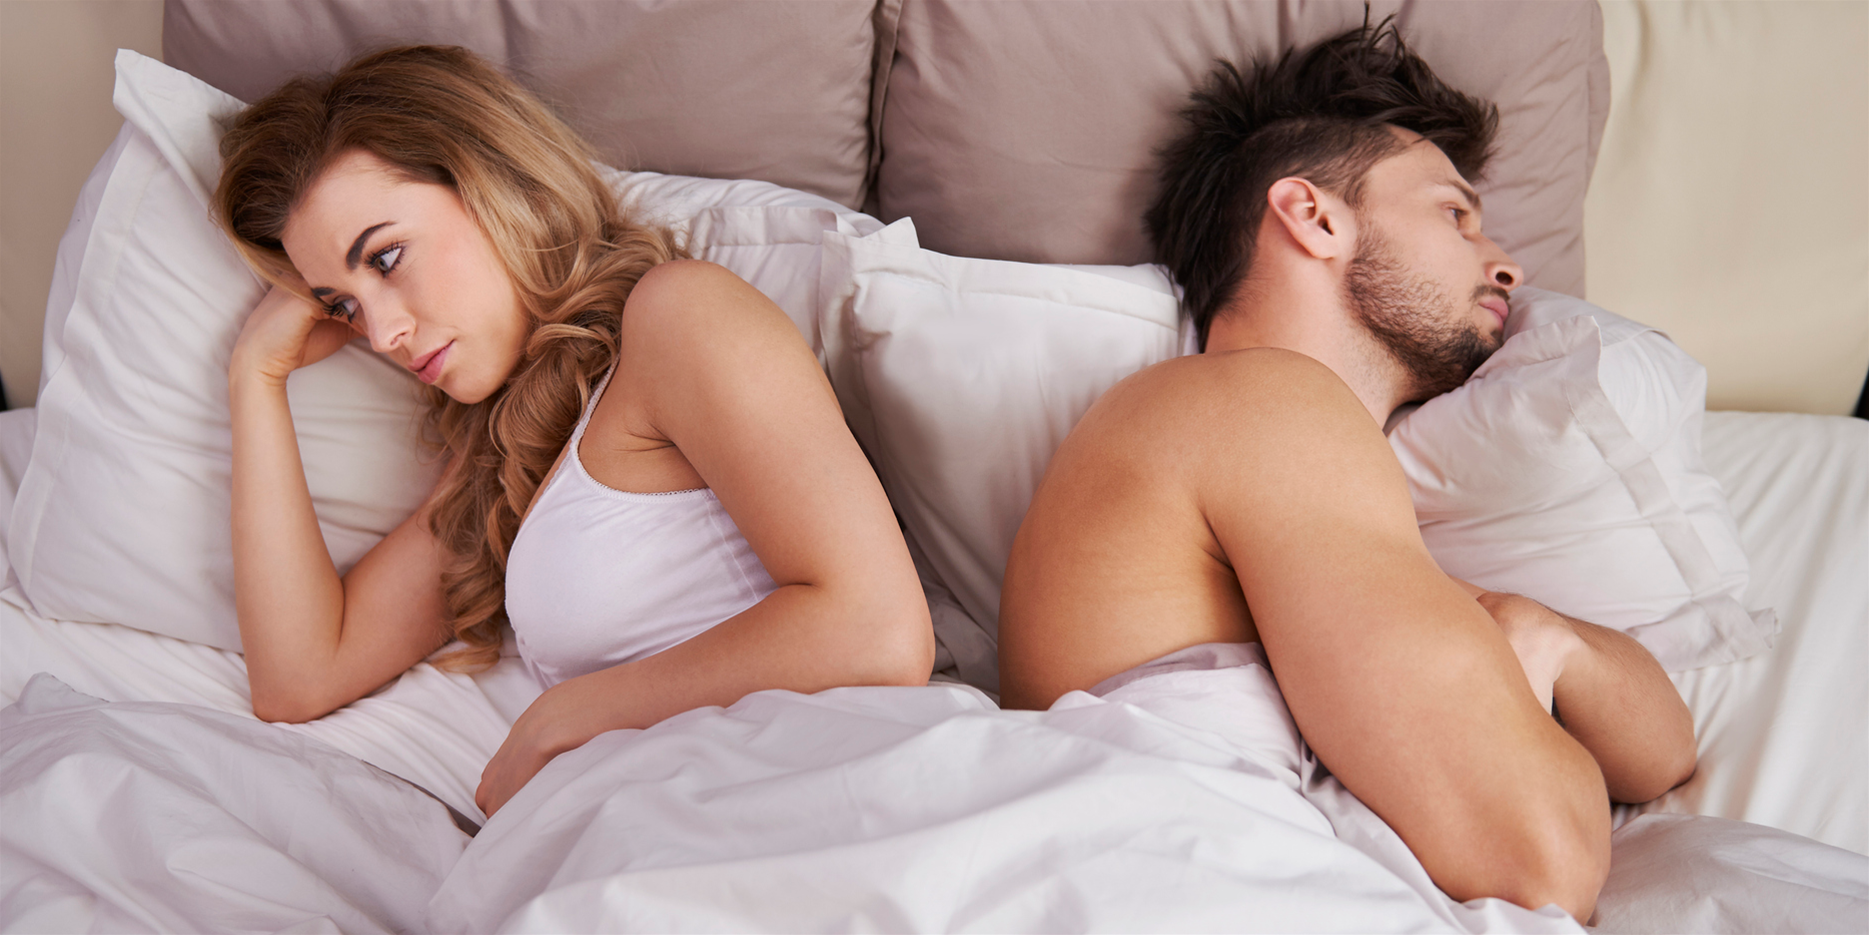 6 Possible Reasons Your Husband Doesn't Want Sex Like He Used To